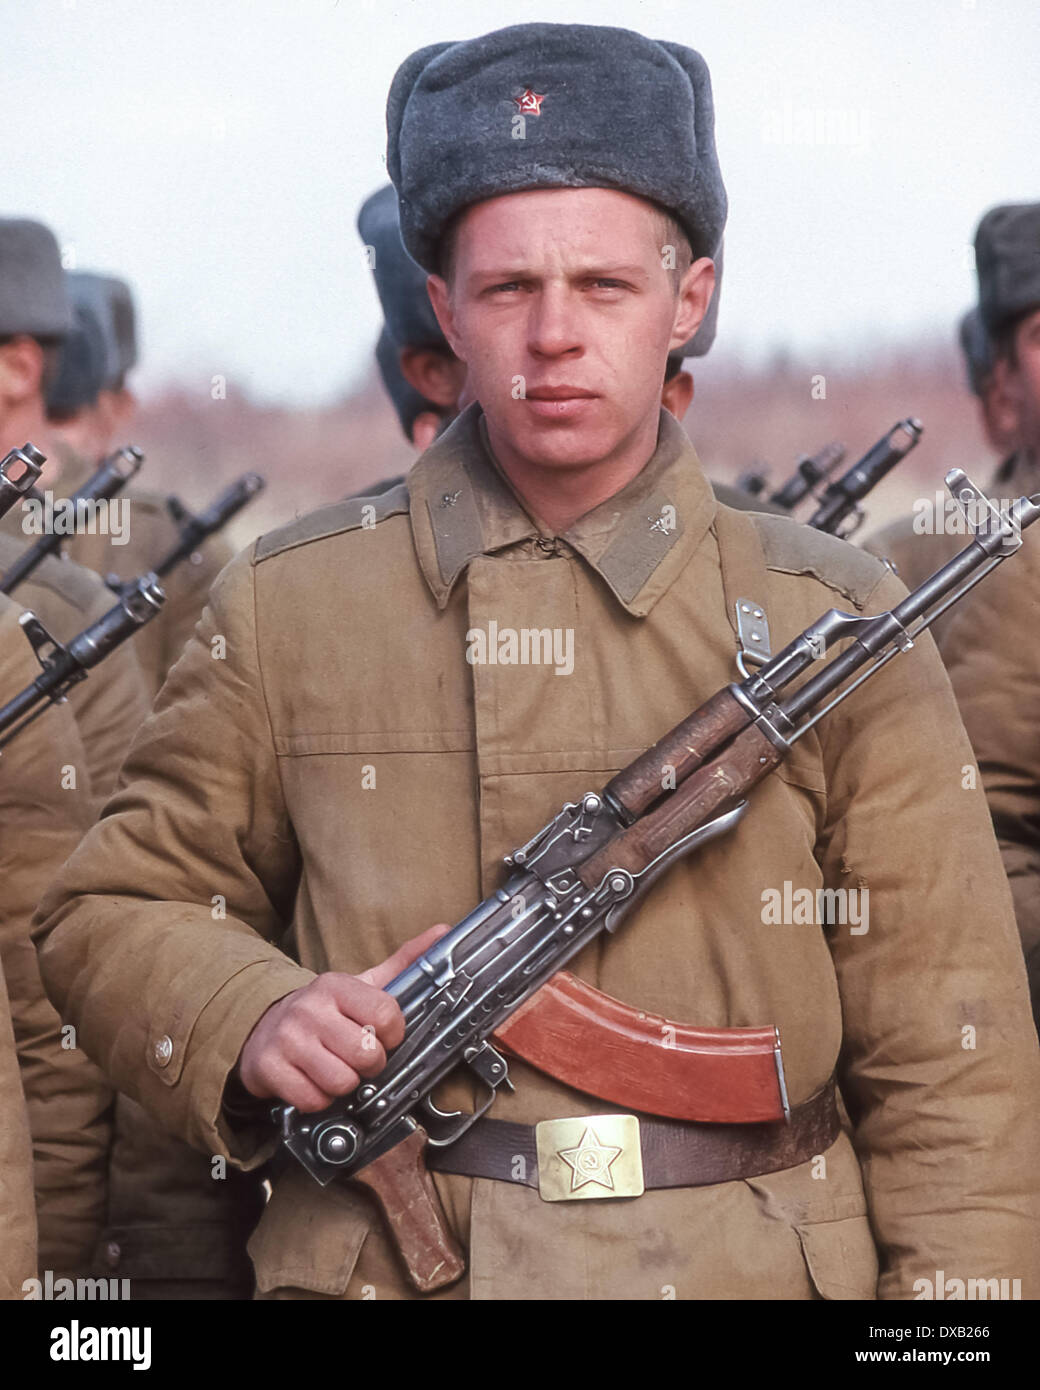 Soviet Afghanistan war - Page 6 Feb-16-1989-termez-uzbekistan-ru-armed-with-an-ak-47-kalashnikov-rifle-DXB266